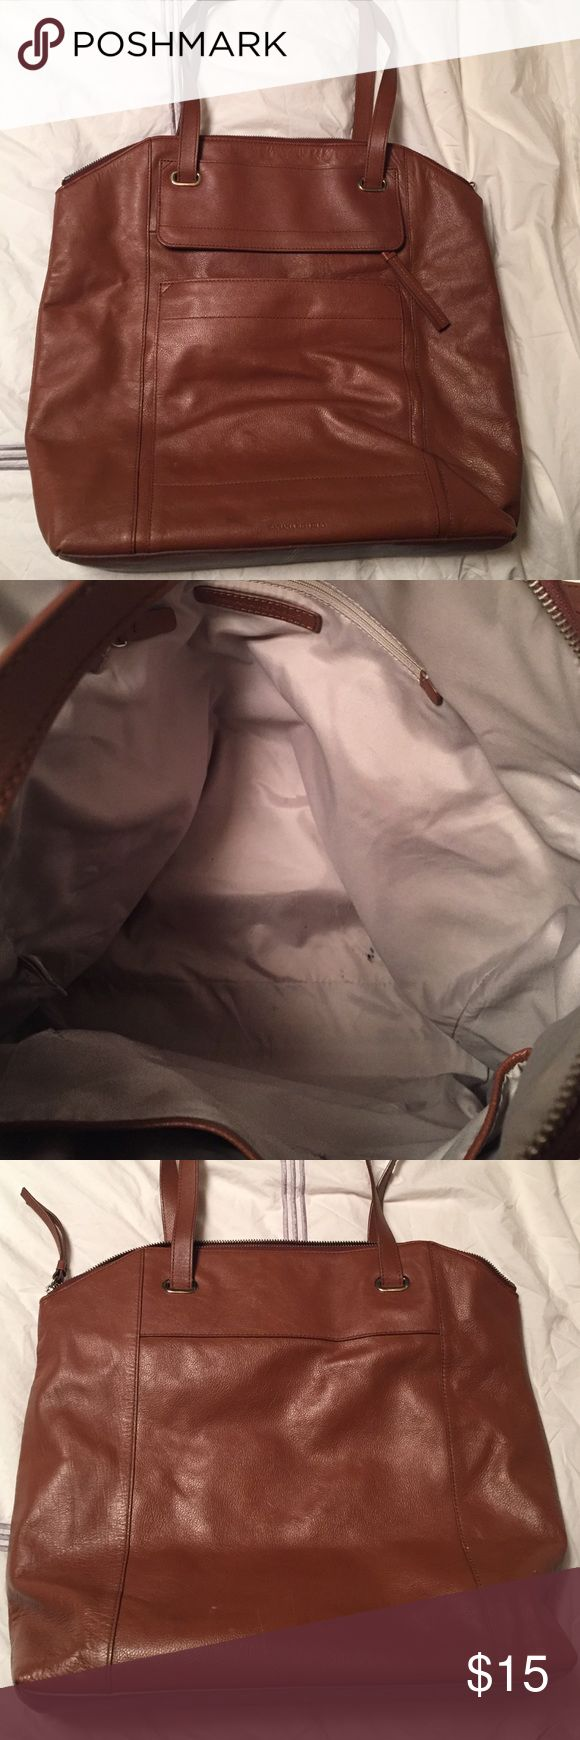 Banana republic leather tote bag Sturdy bag with top zipper, and 2 outside pockets. Inside lining has some marks otherwise great condition. Has 2 cell phone pockets inside. Some marks on outside as well pictured. Loved this bag! Banana Republic Bags Totes